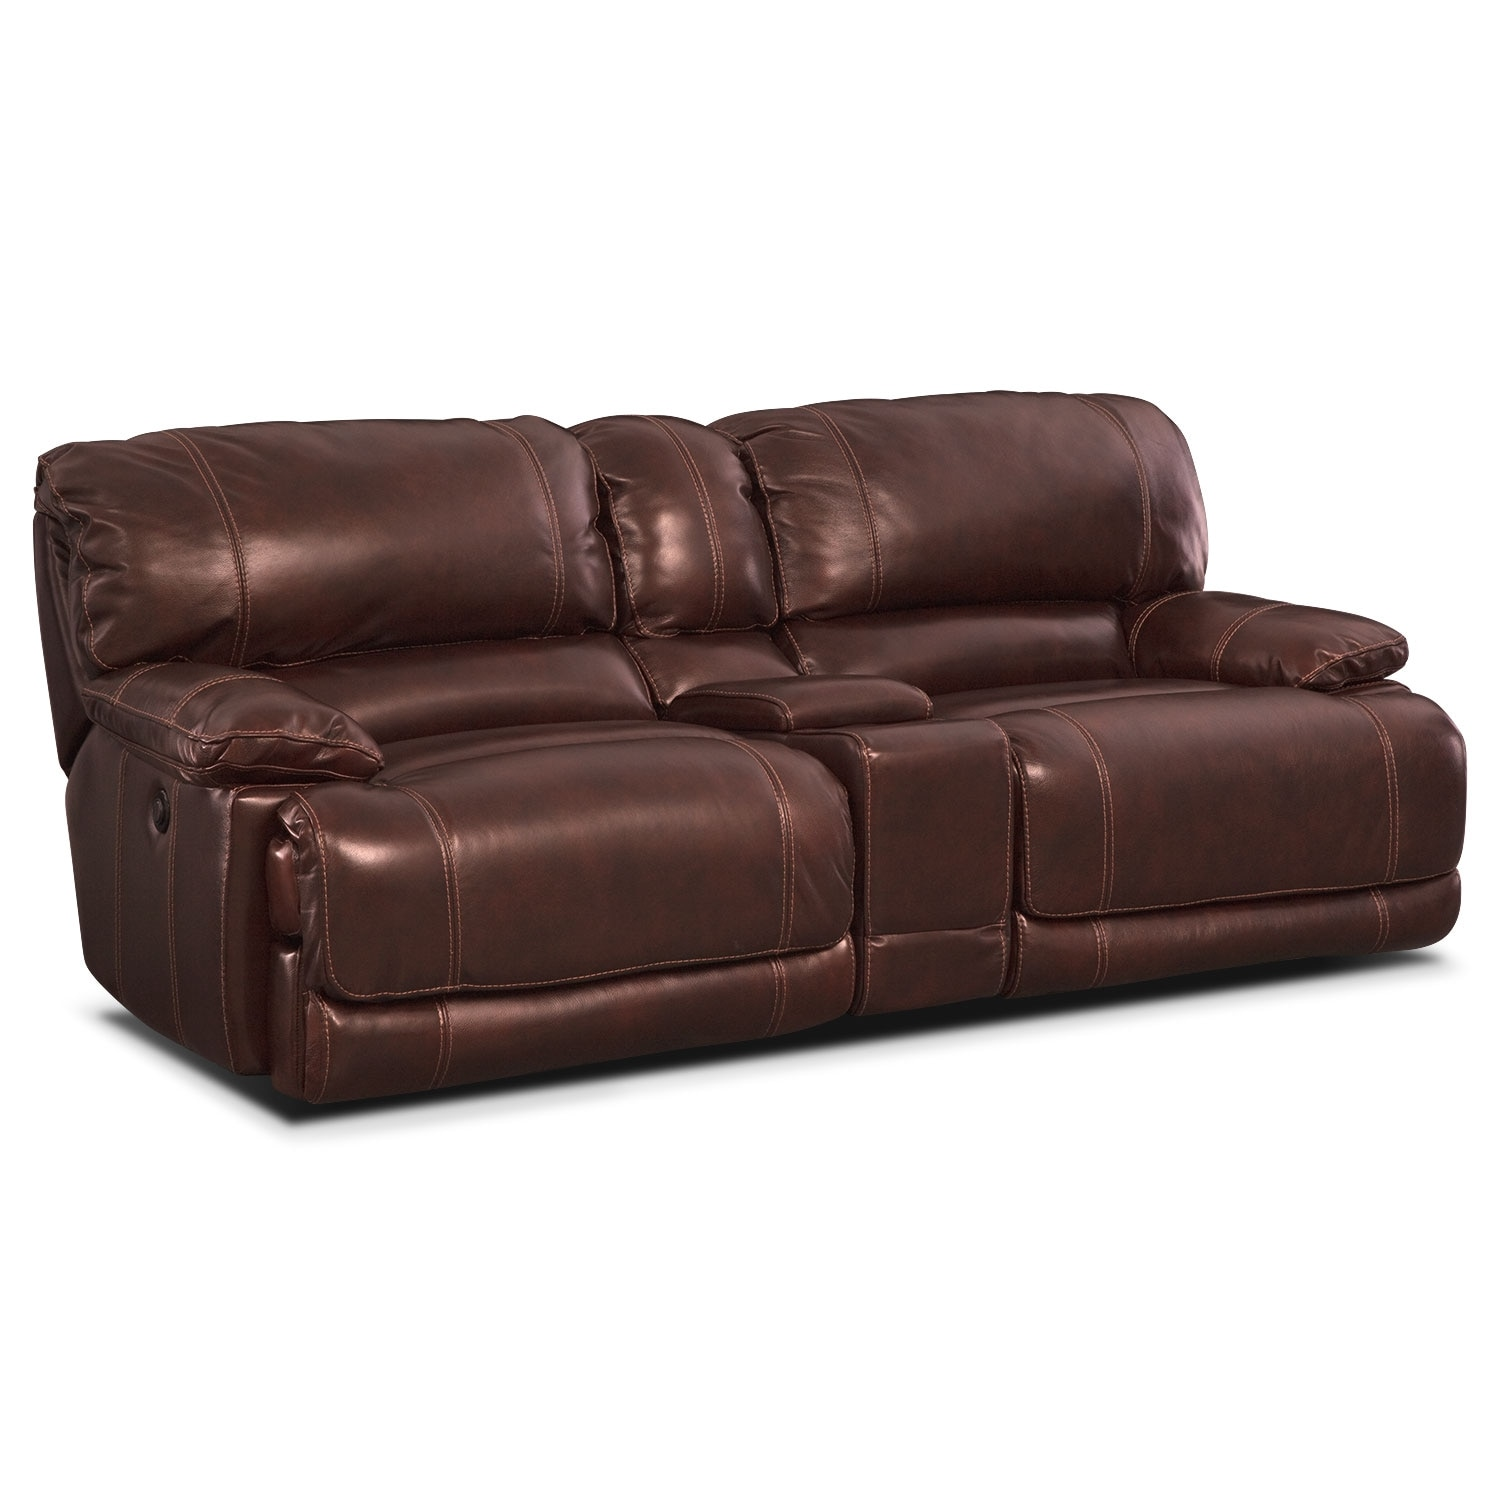 St. Malo Power Reclining Sofa with Console - Burgundy